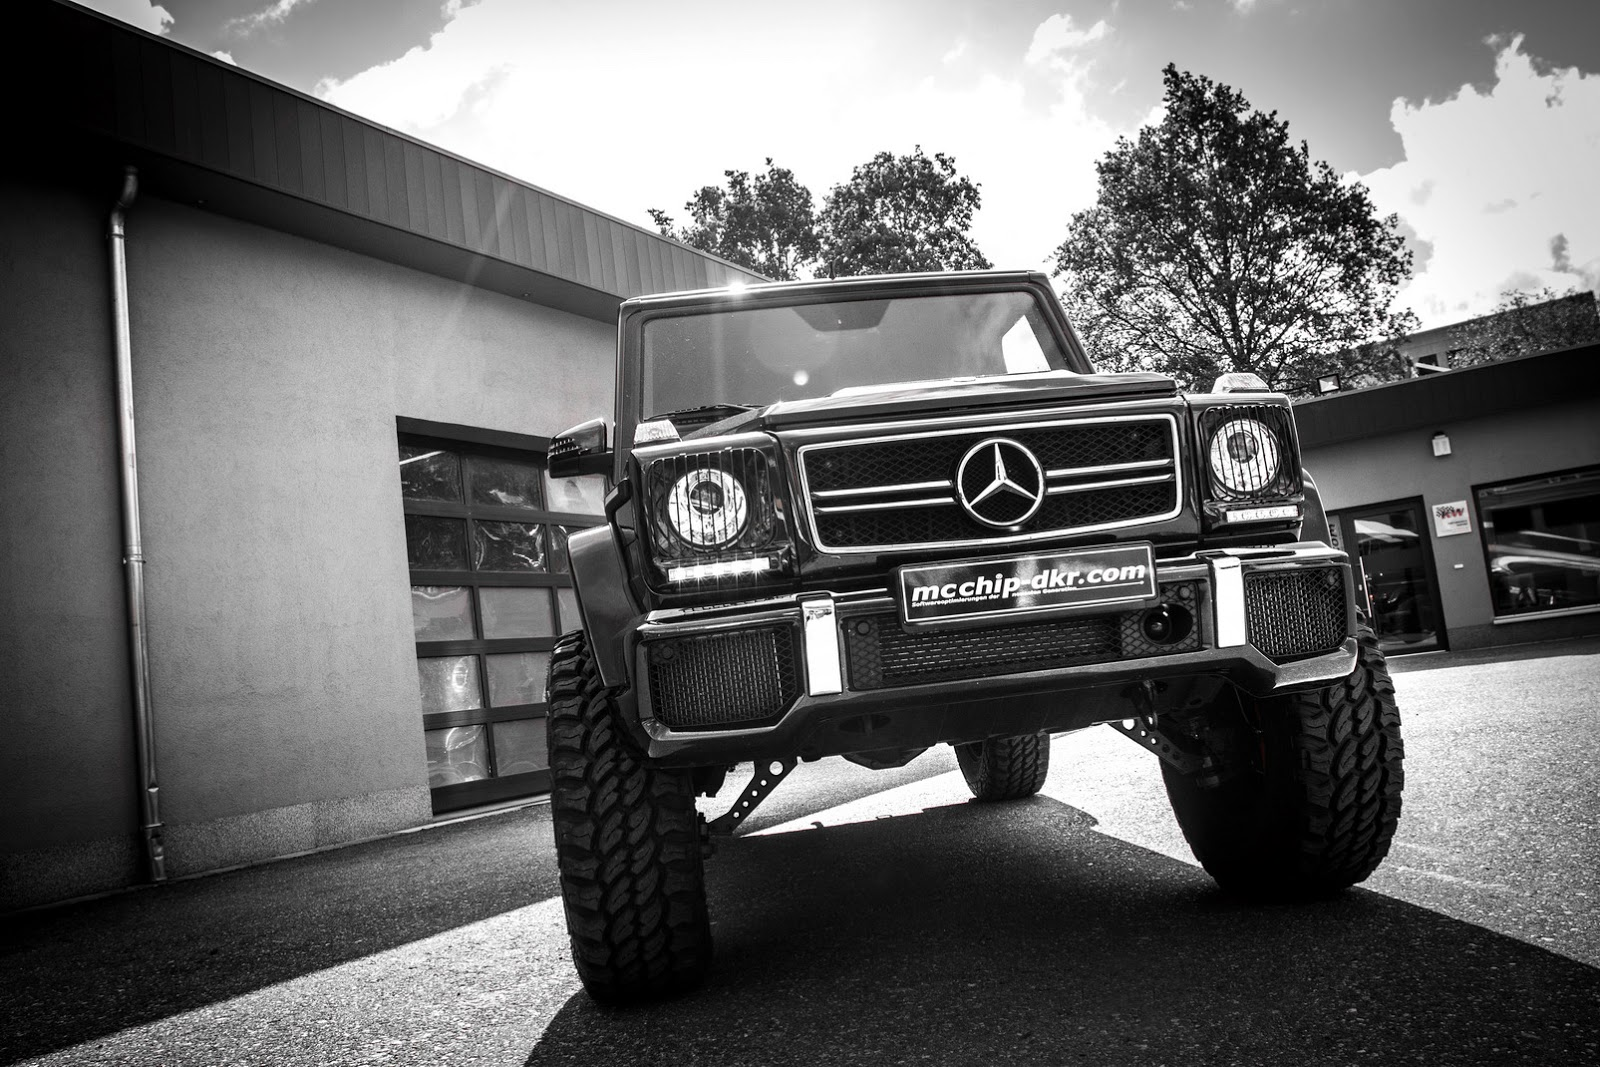 Photo Wallpaper Car Sound System Mcchip Turns Mercedes Benz G63 Amg Into 4x4 178 Of Sorts